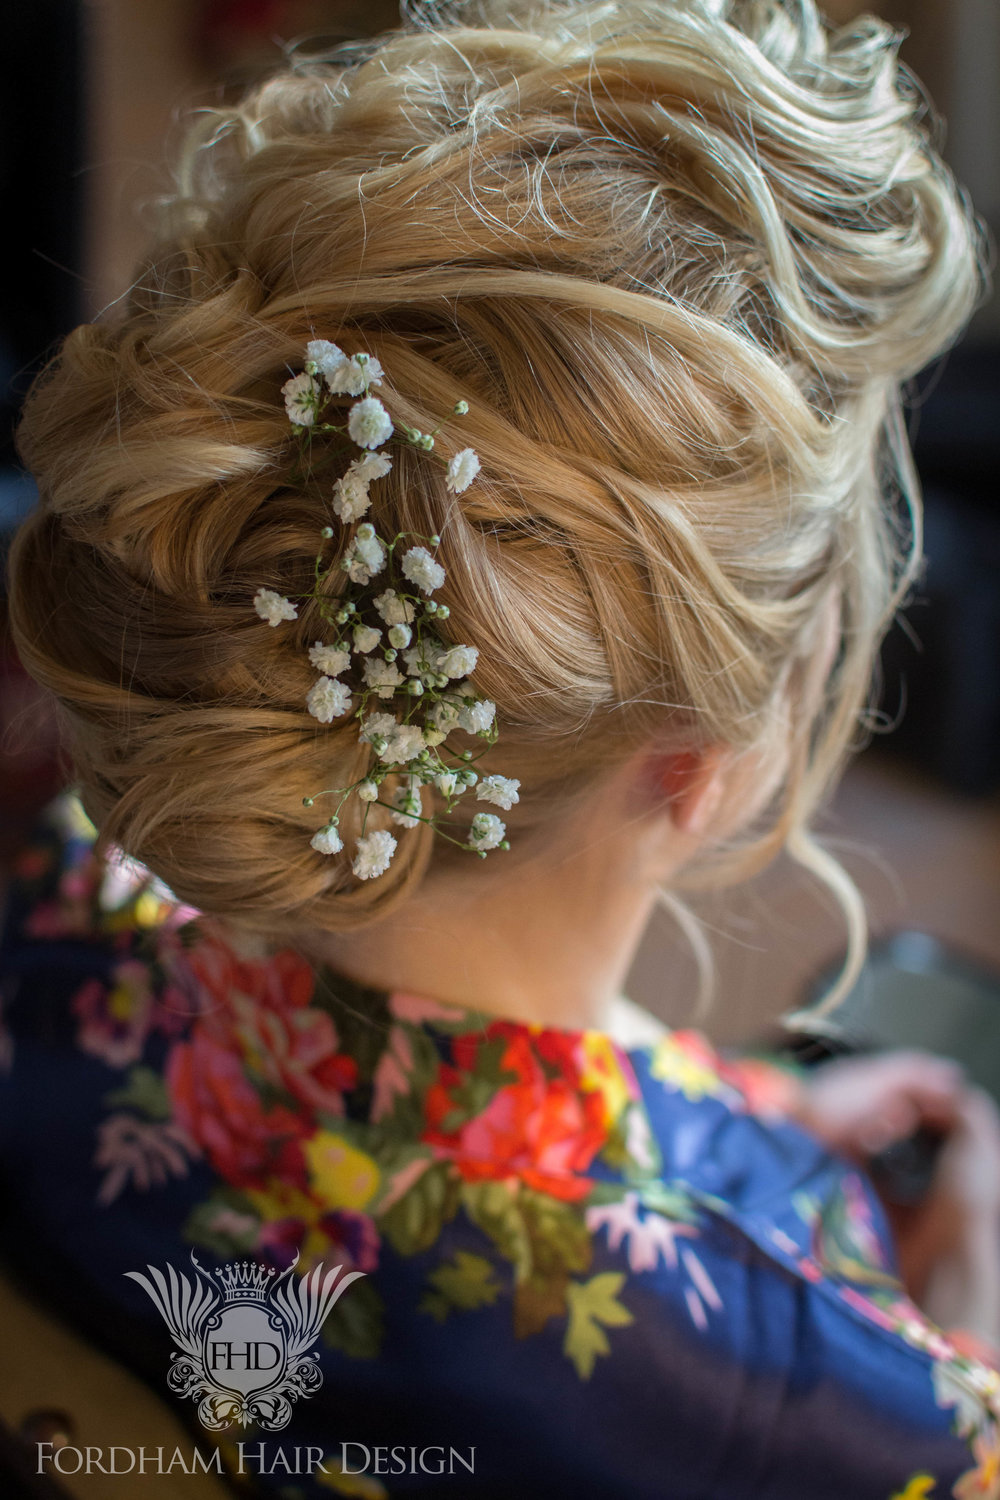 Barnsley House Wedding Hair